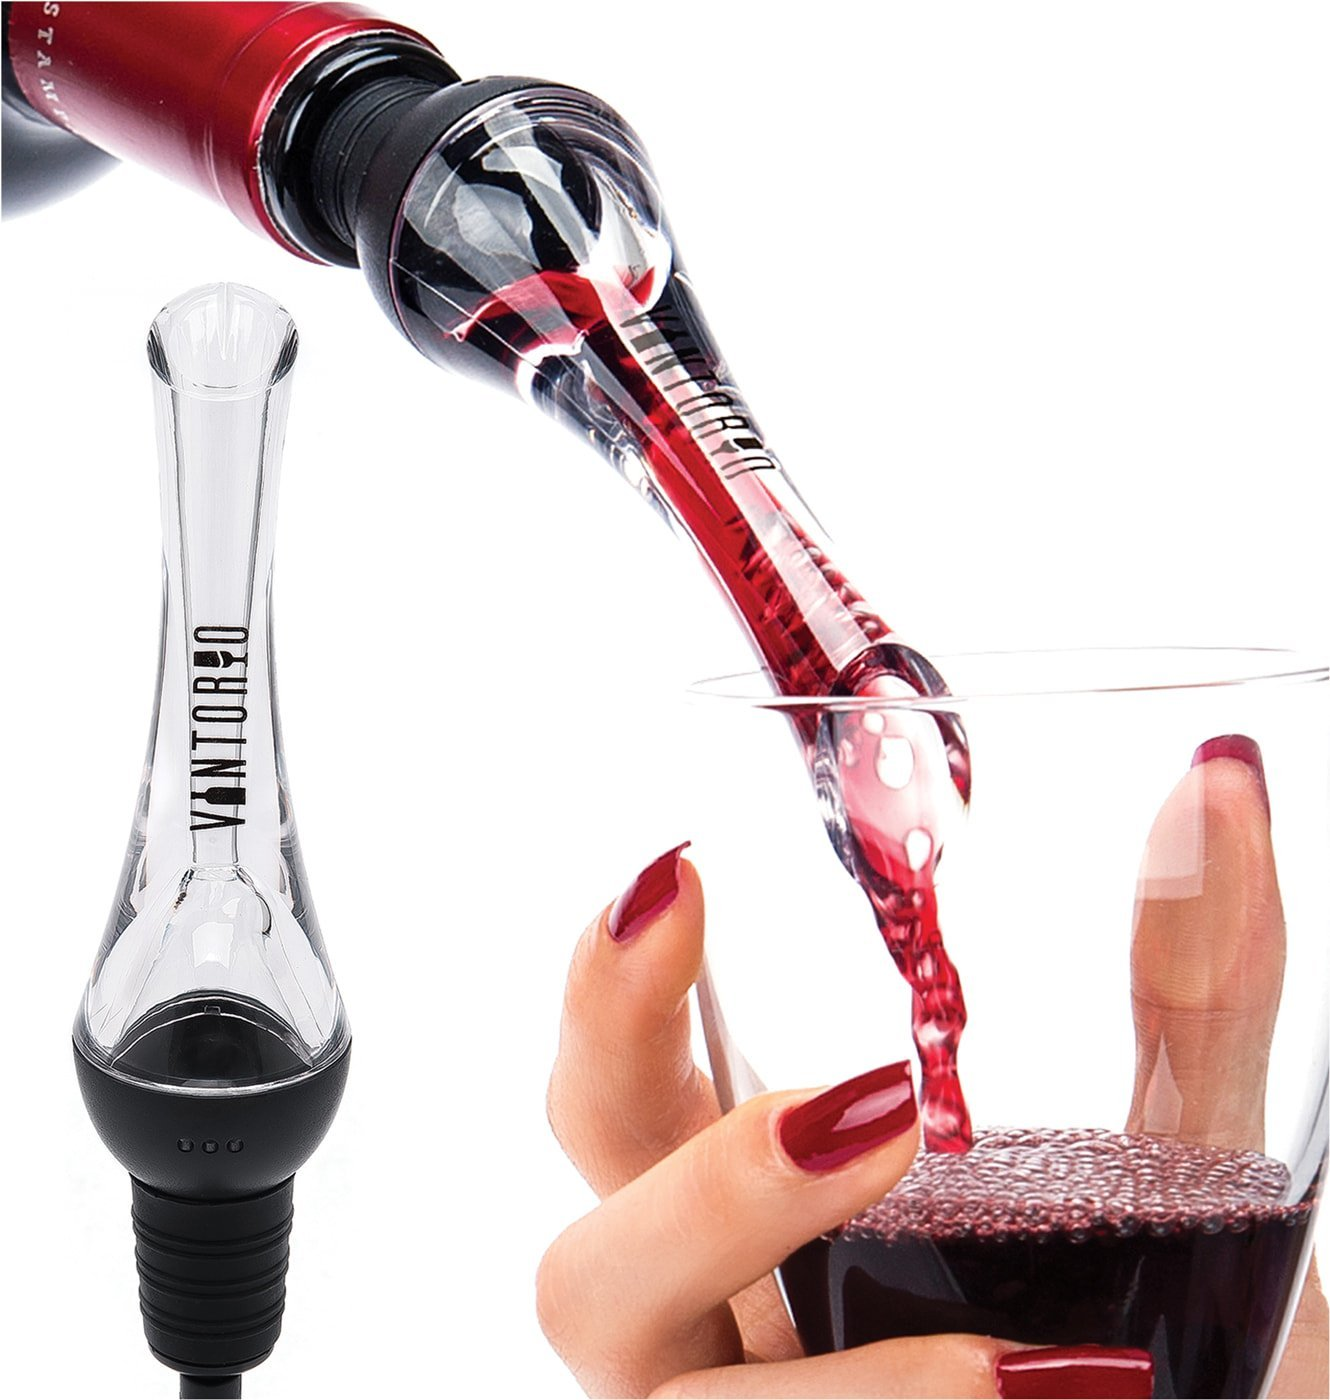 Wine Aerator Premium Aerating And Decanter Spout Black